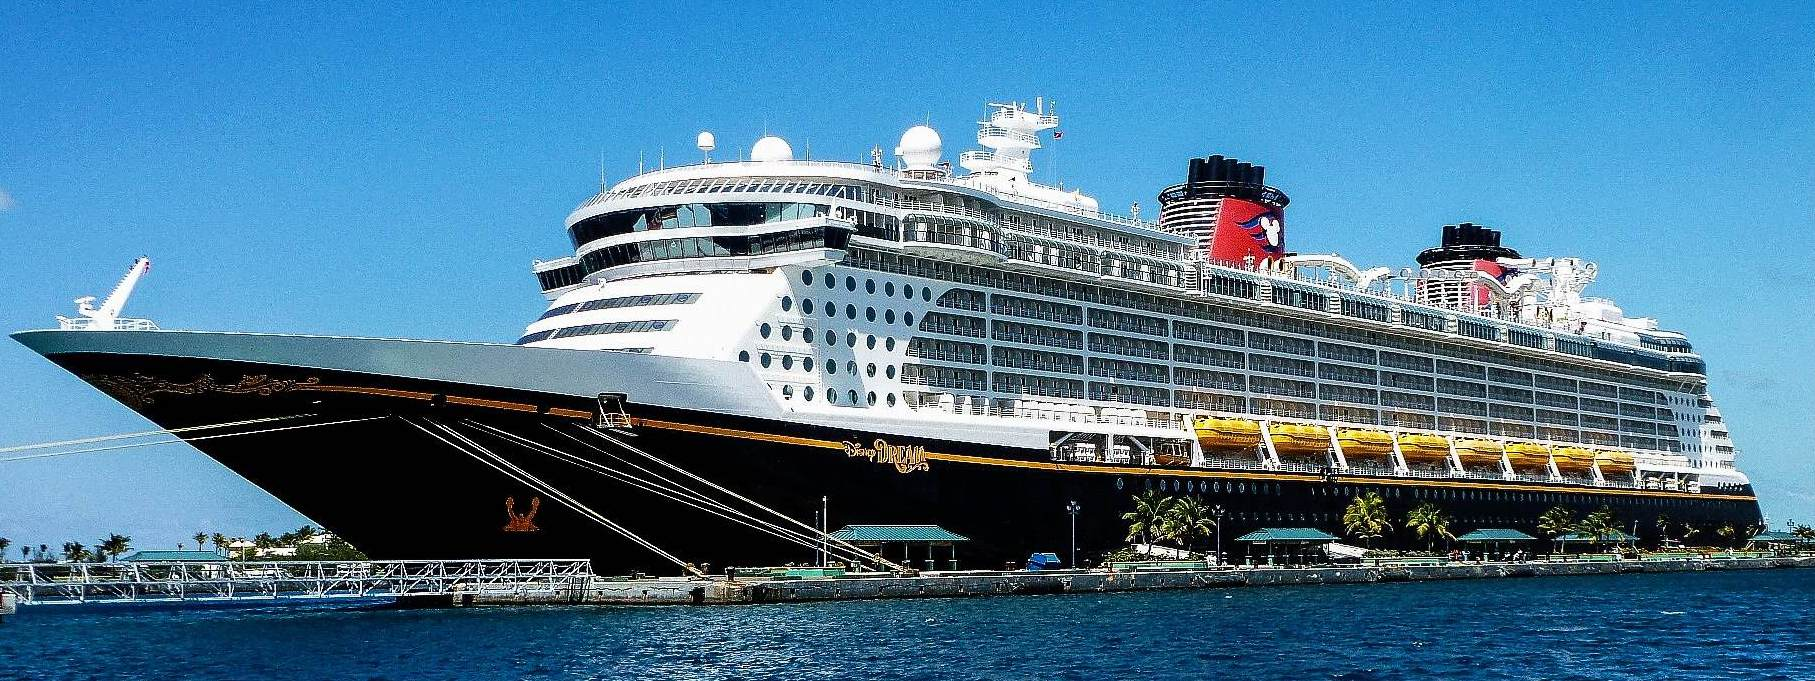 Facts You Probably Did Not Know About Disney Dream Cruise Ship - The dream cruise ship disney